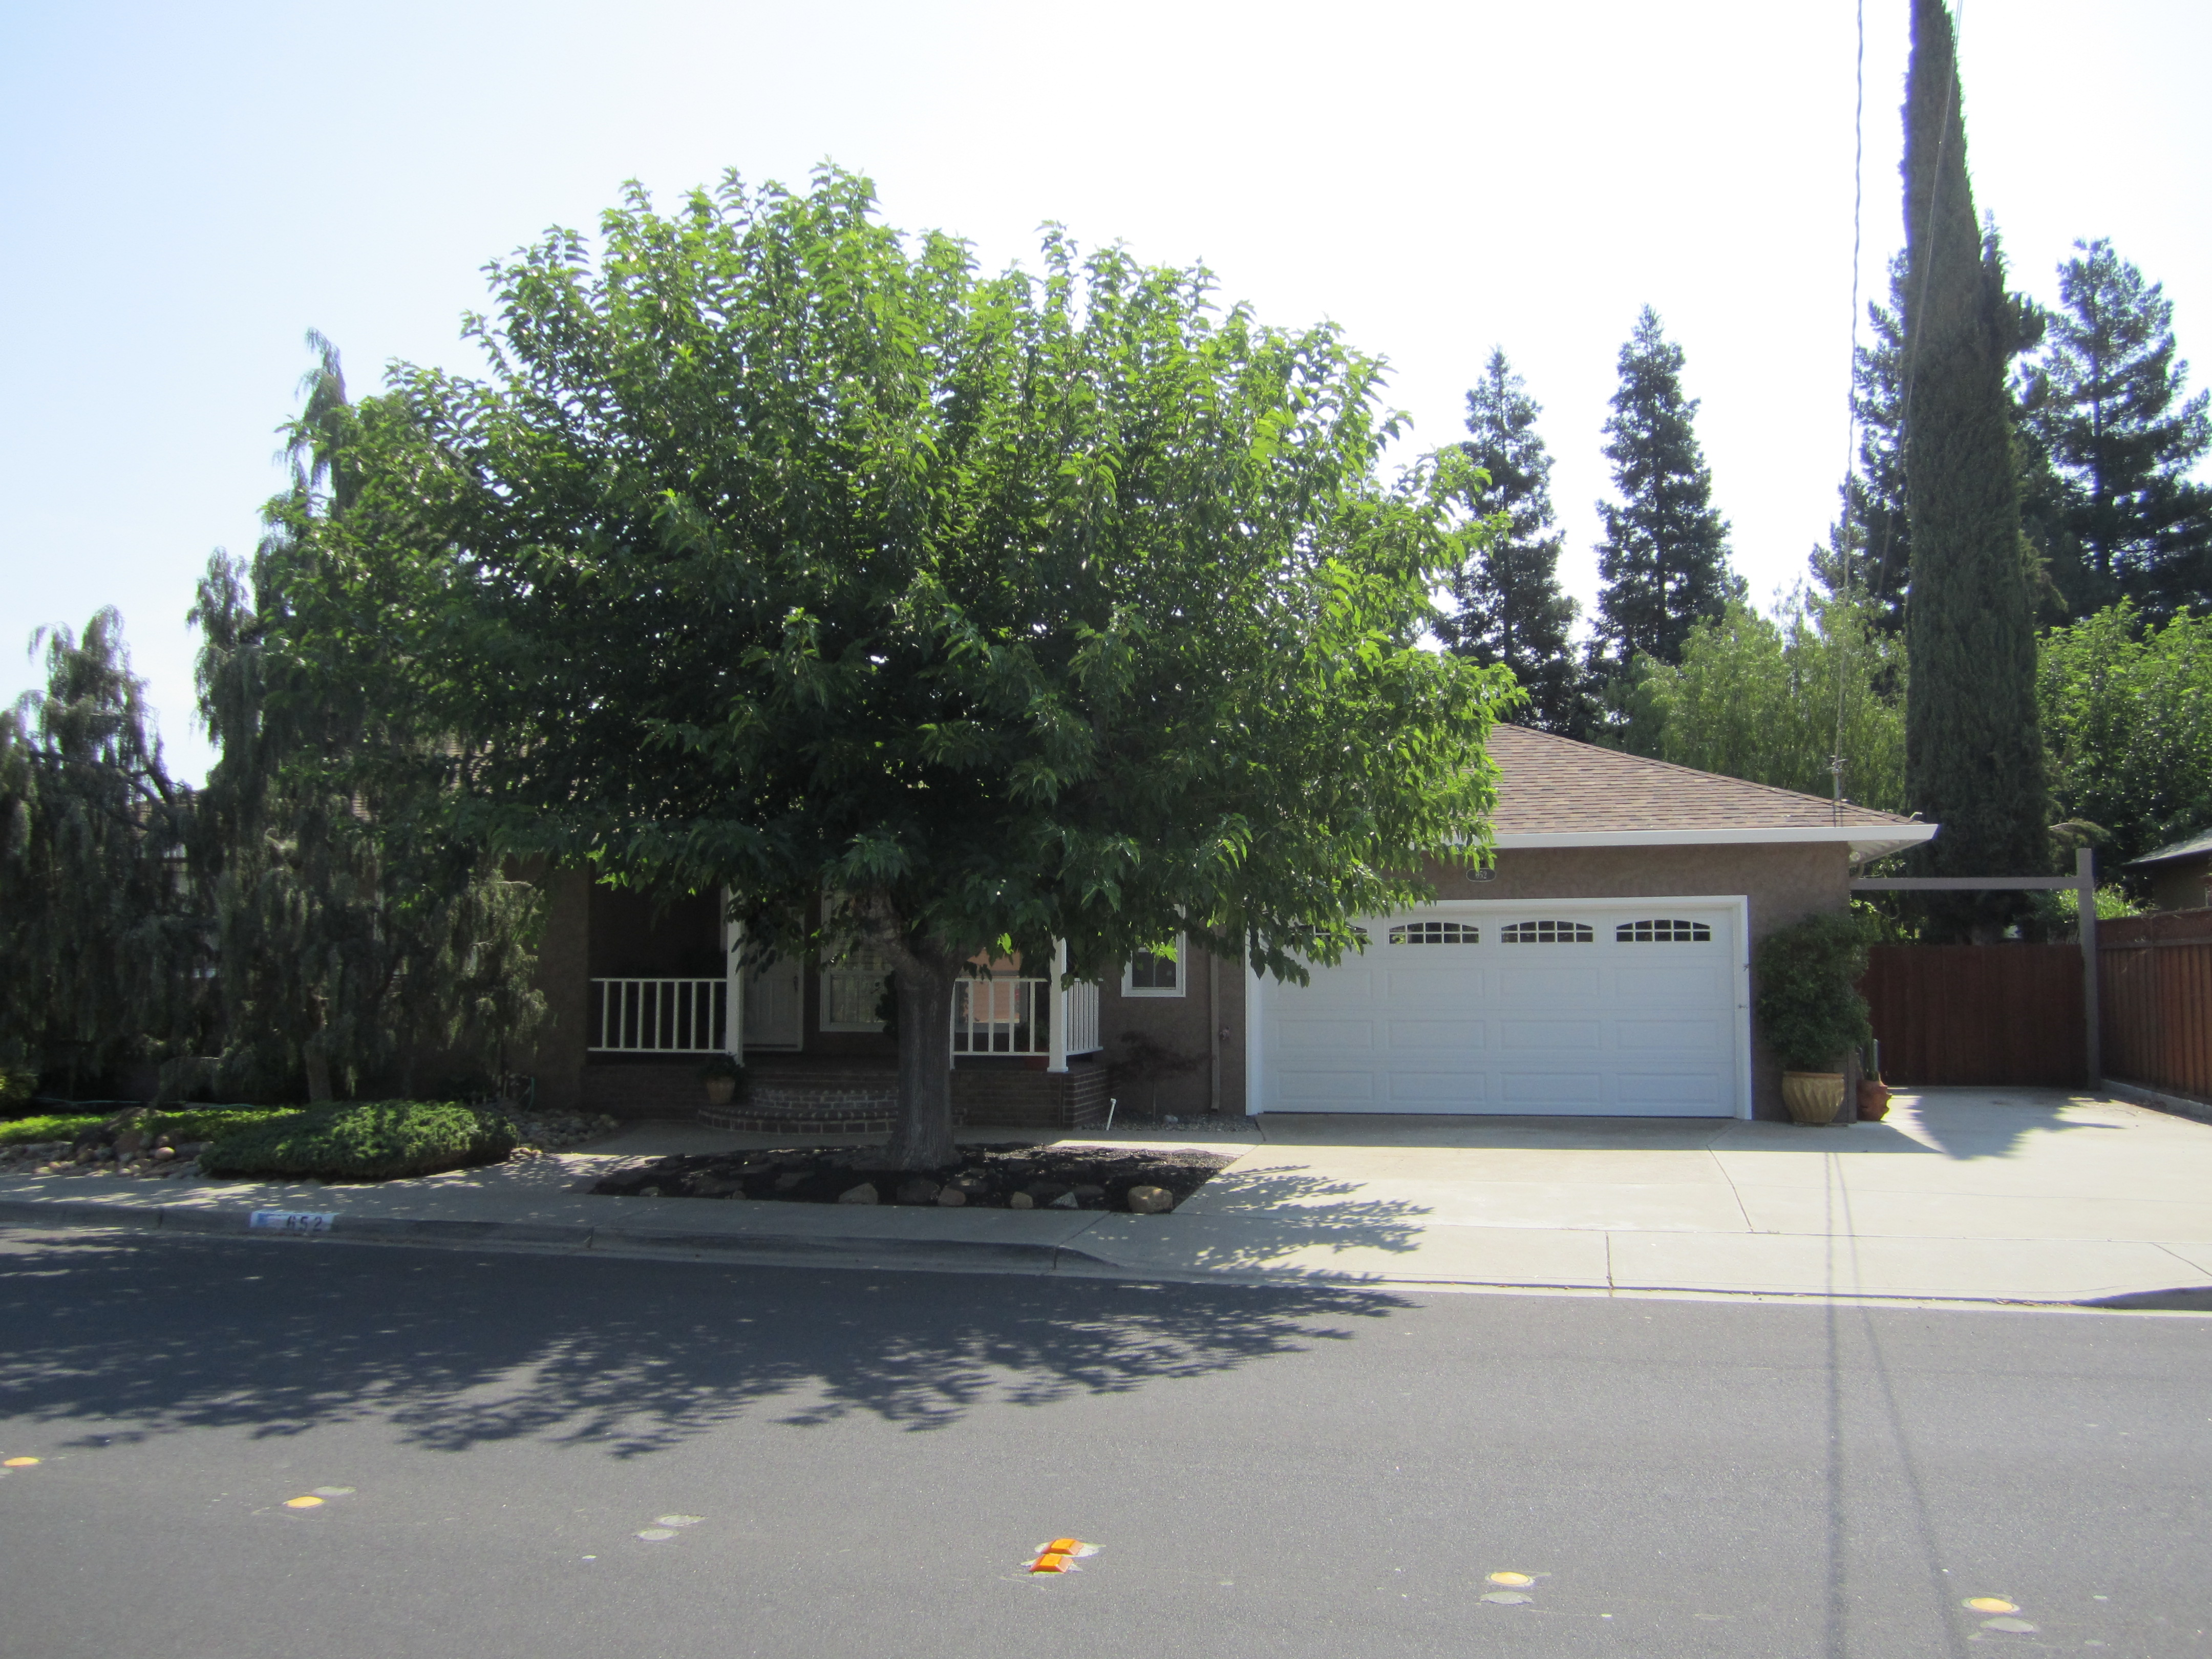 Sold $51,000 Over Asking: 652 Hillcrest Ave, Livermore, CA